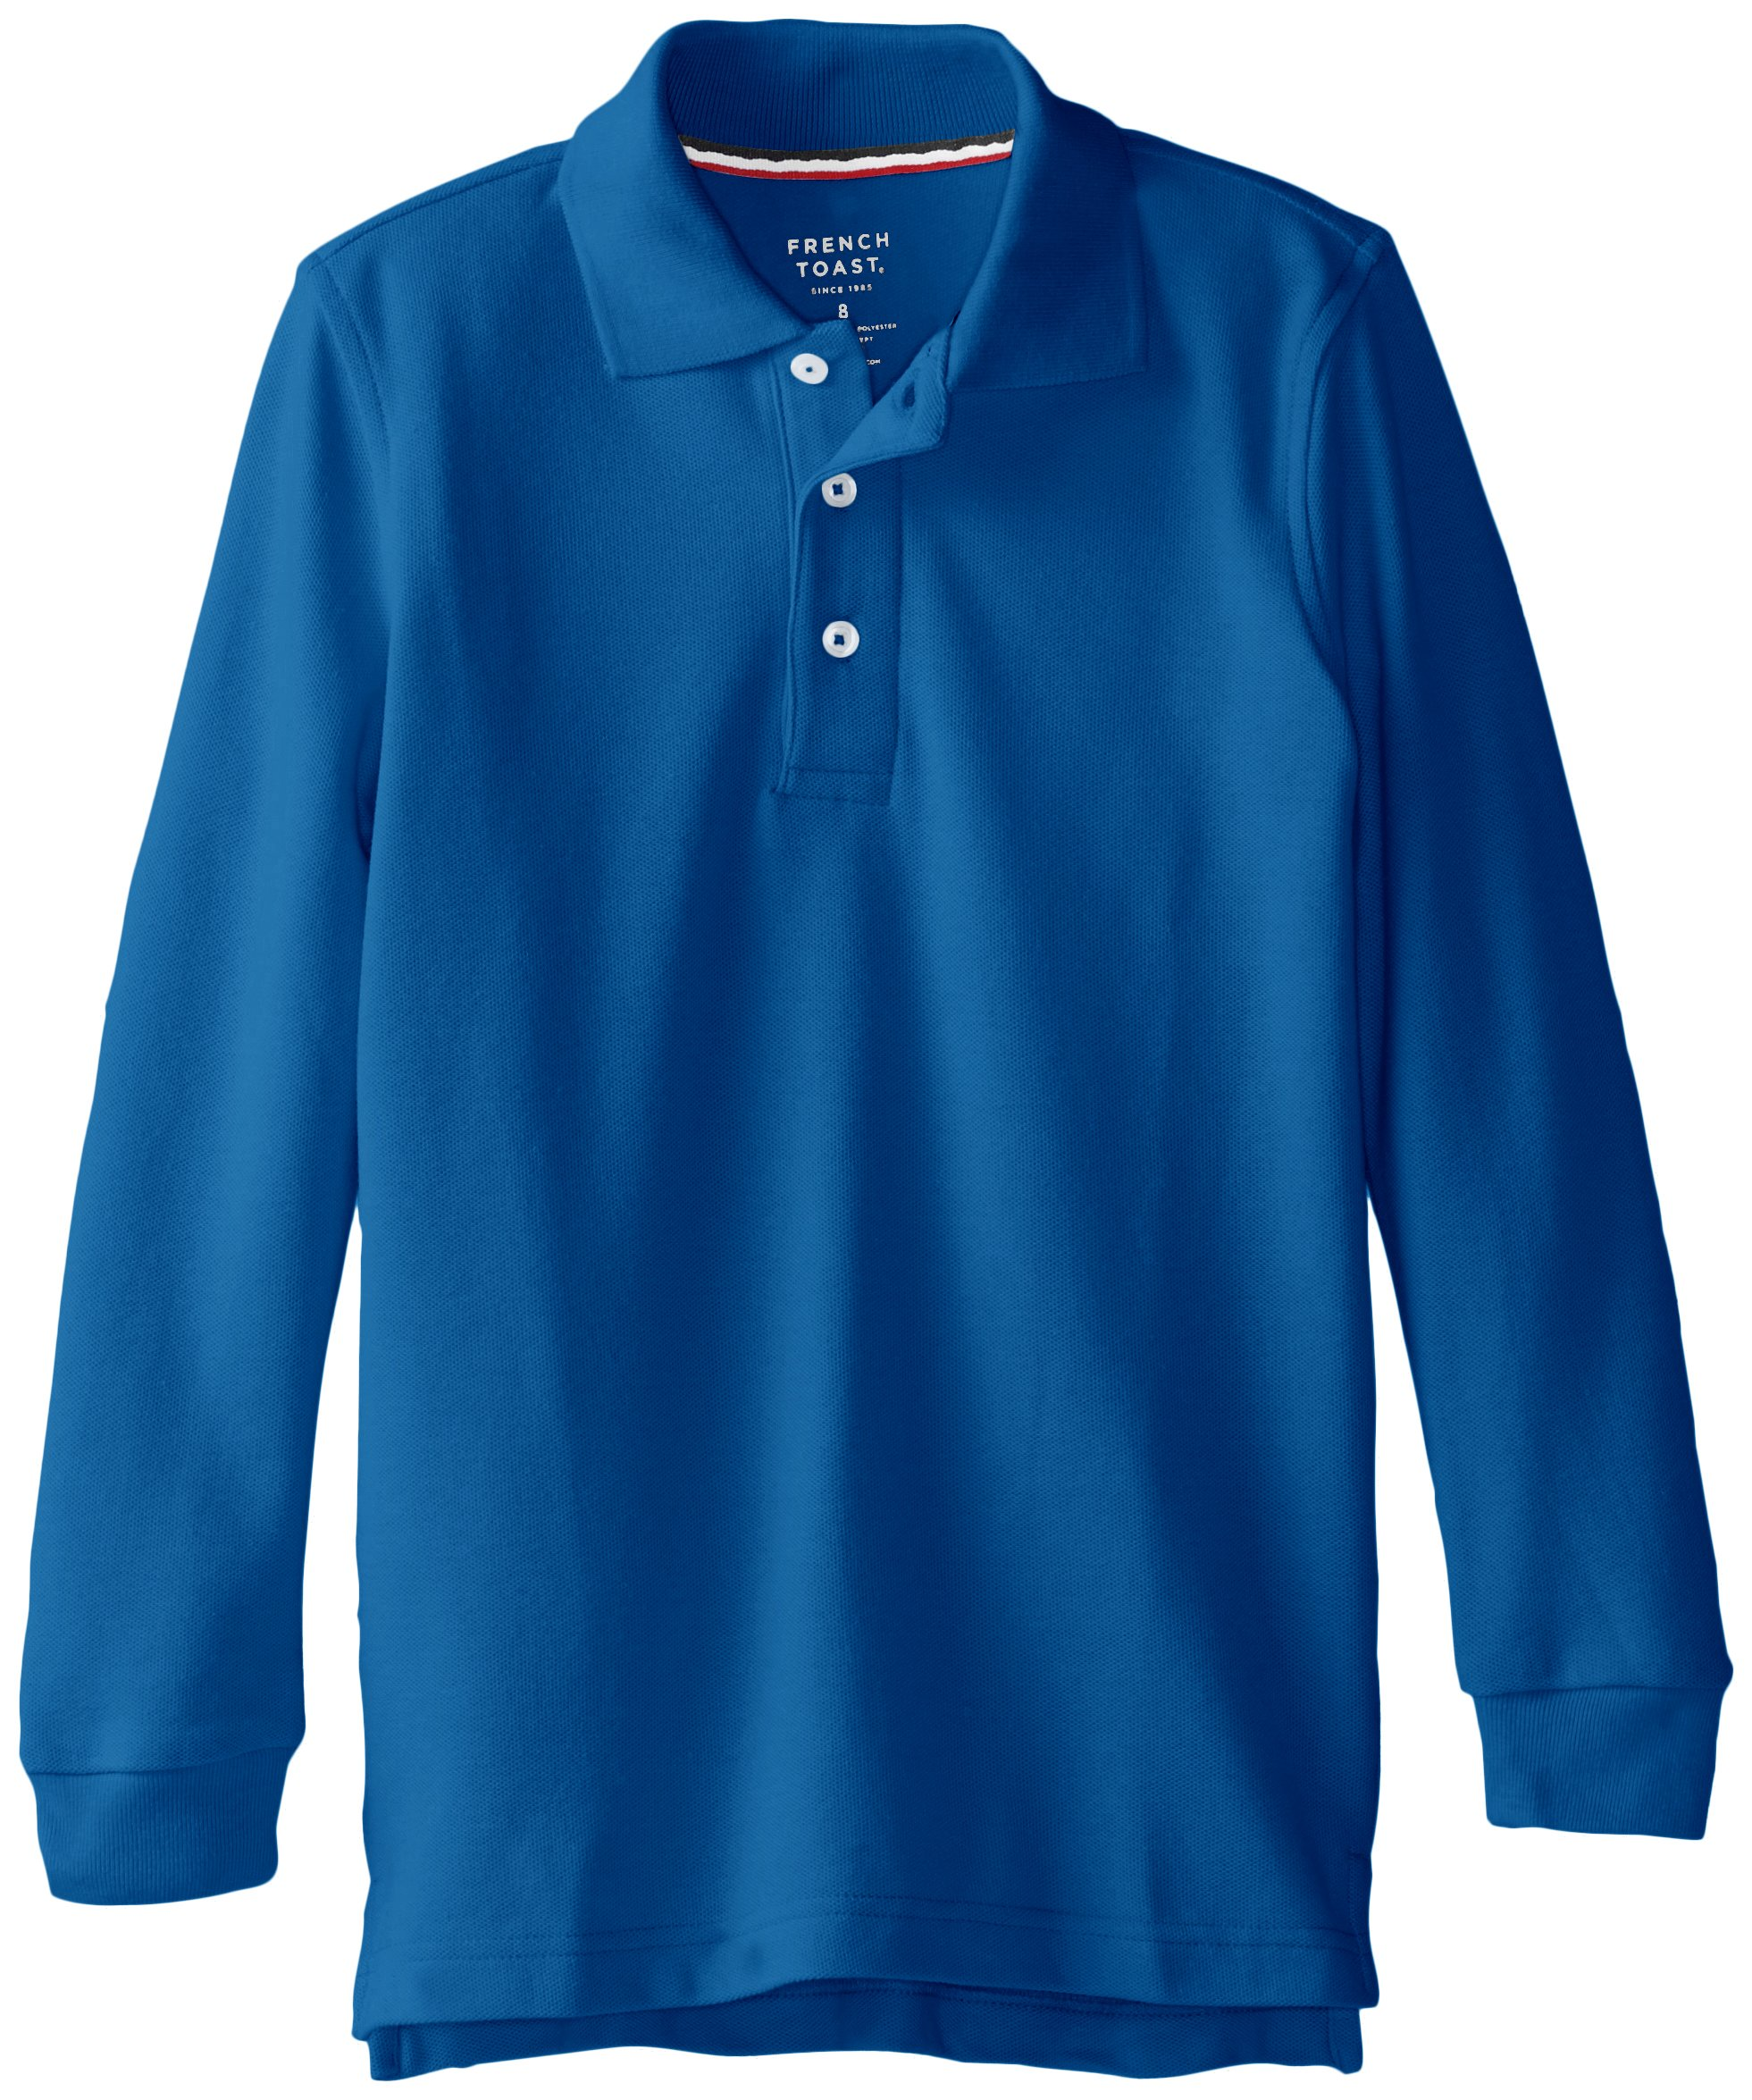 French Toast Big Boys' Long Sleeve Pique Polo, Royal, 10